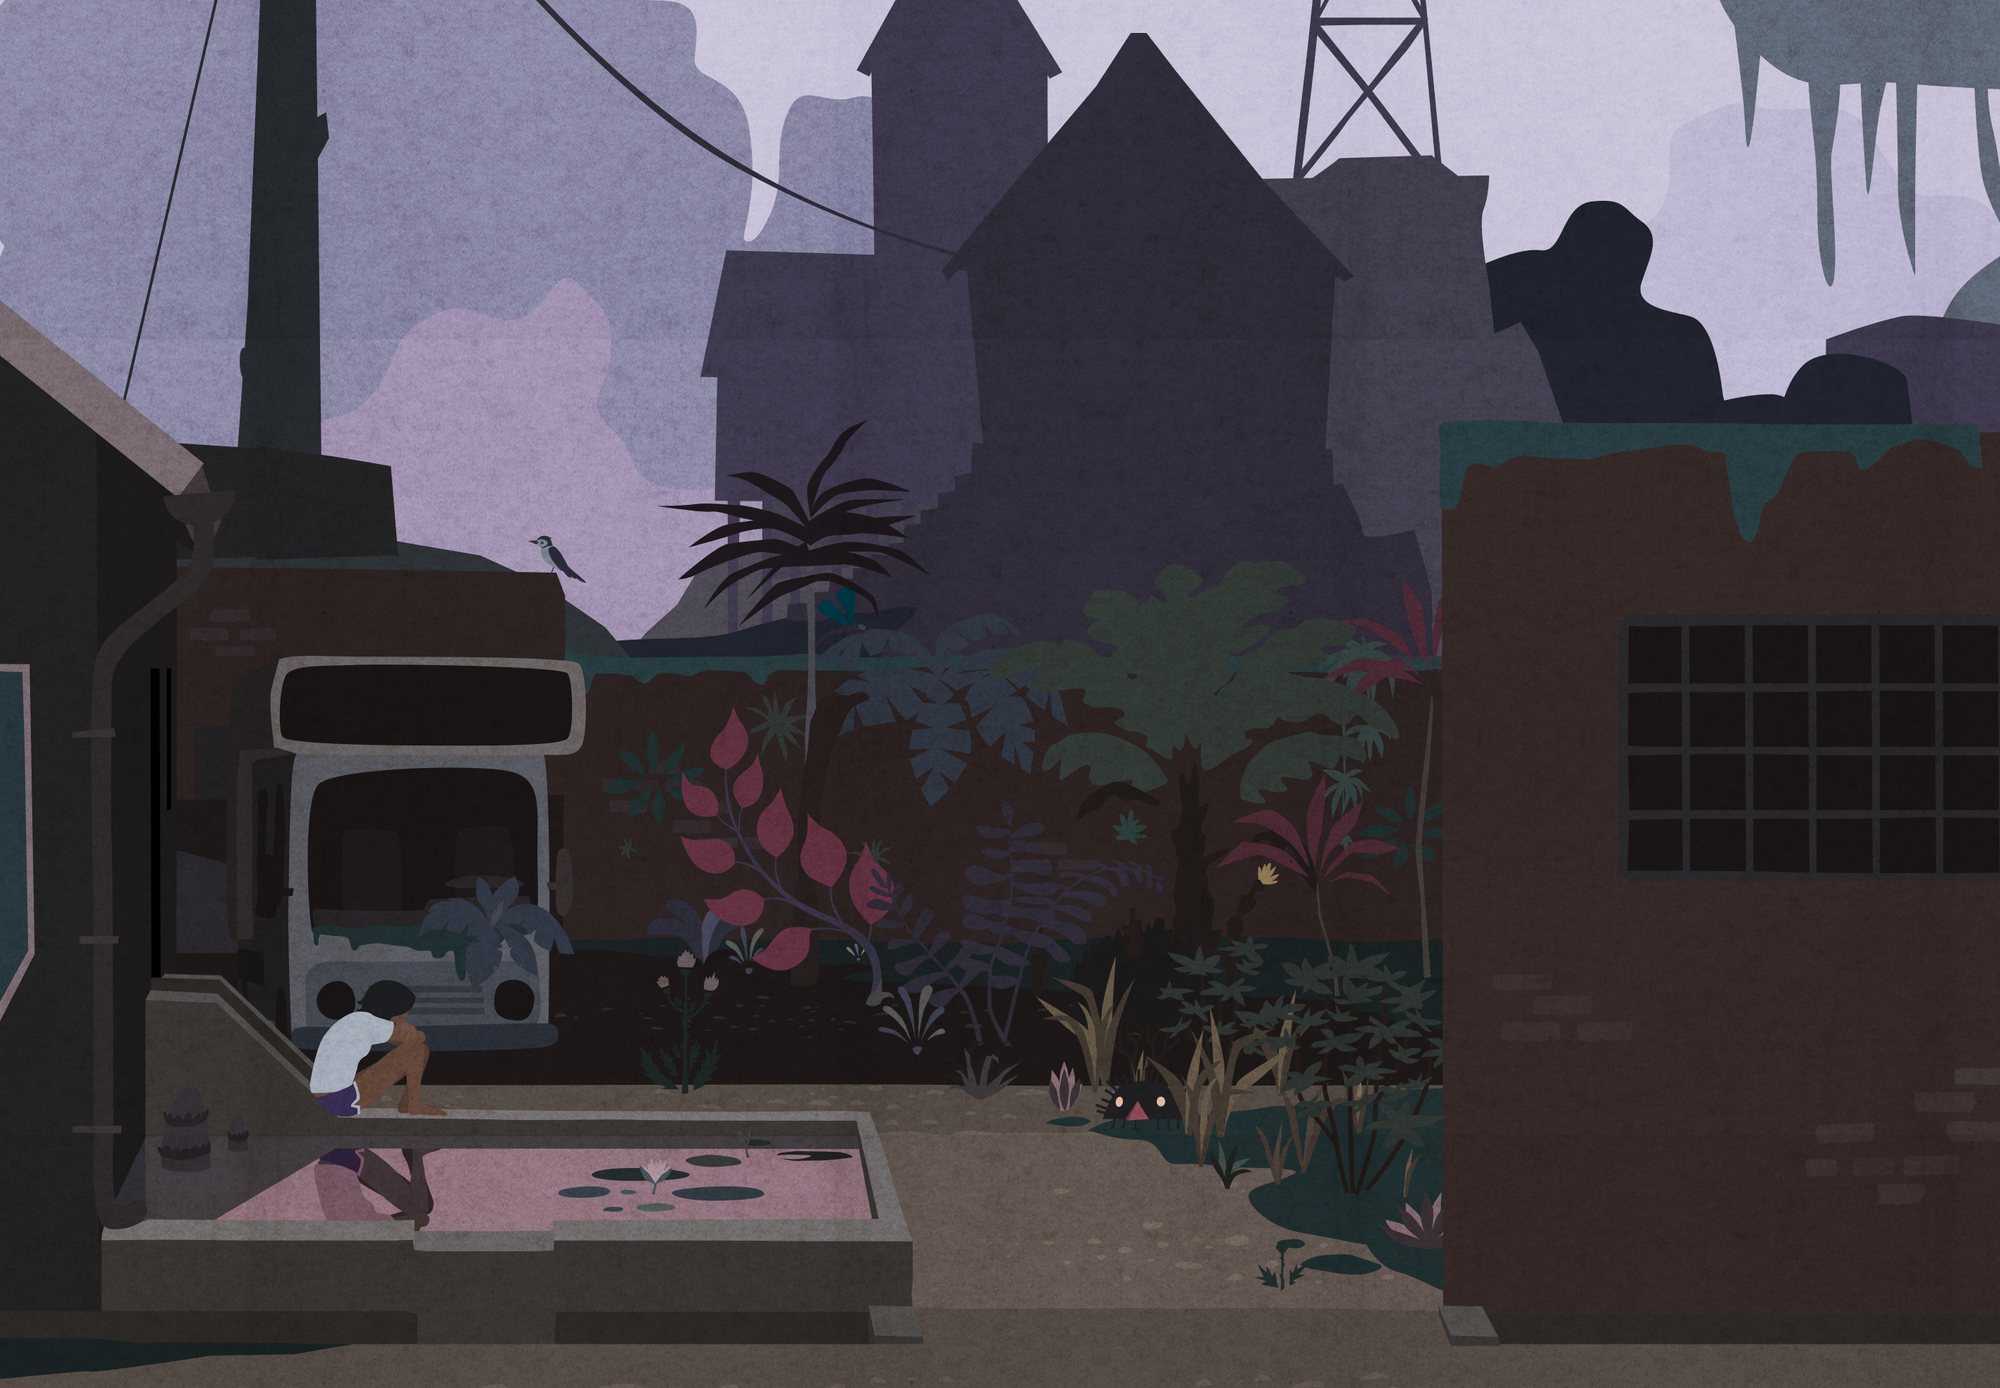 An image showing an old version of Tung's garden at dawn with Kai sitting in it.